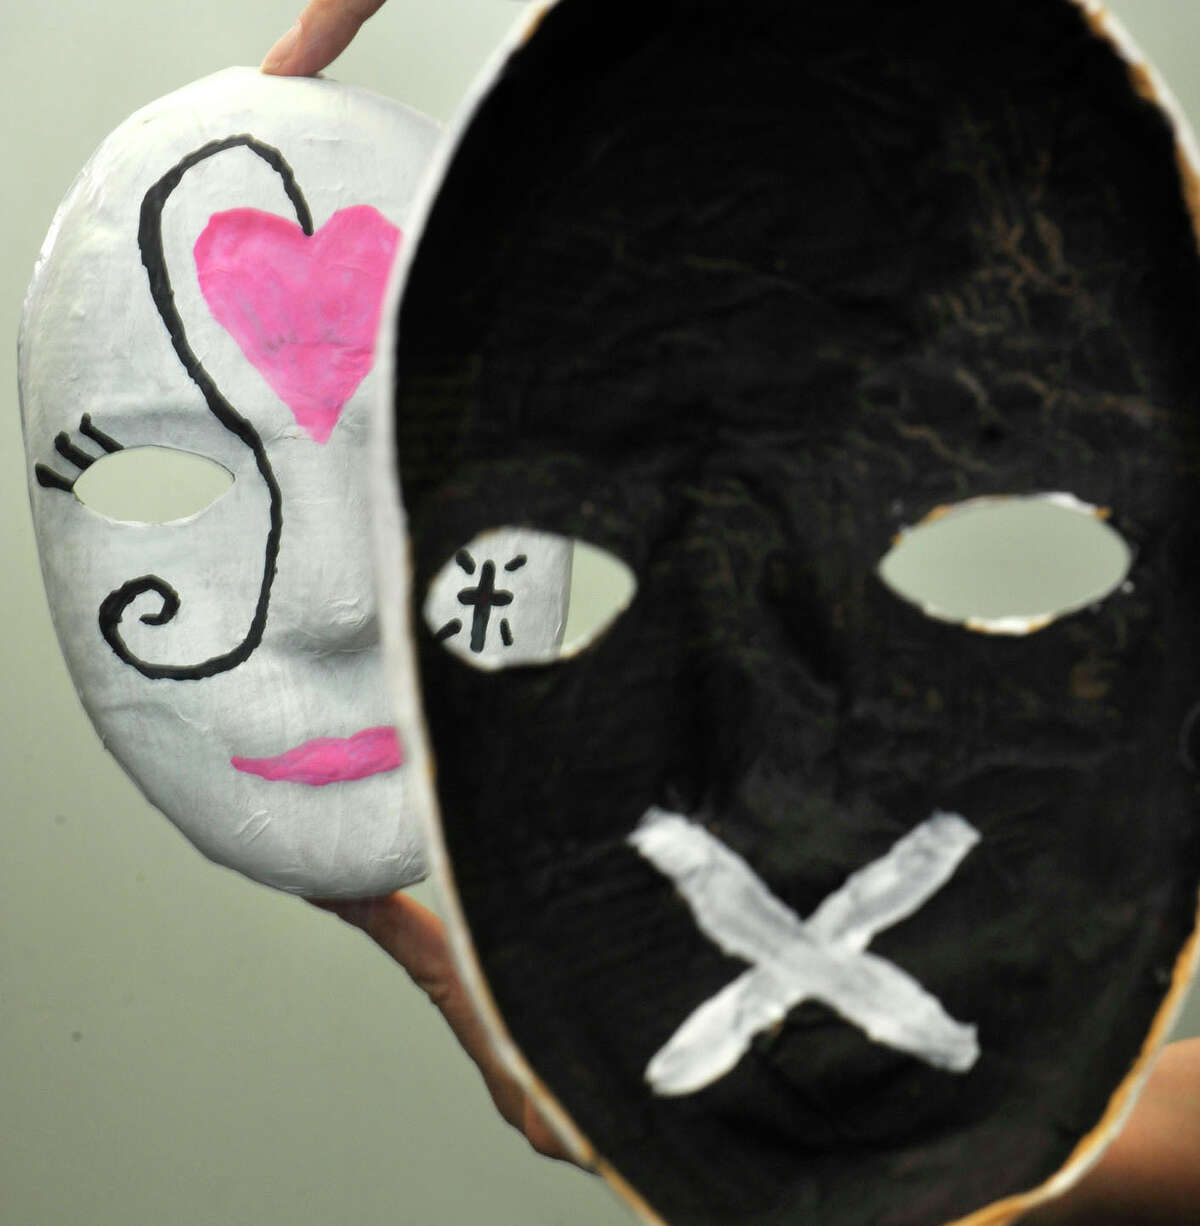 A mask made by a woman in a domestic violence support group shows, in the reflection at left, what the victim shows the world. The inside of the mask, right, represents what the victim is really going through. Photographed at the Women's Center of Greater Danbury on Thursday, May 3, 2012.